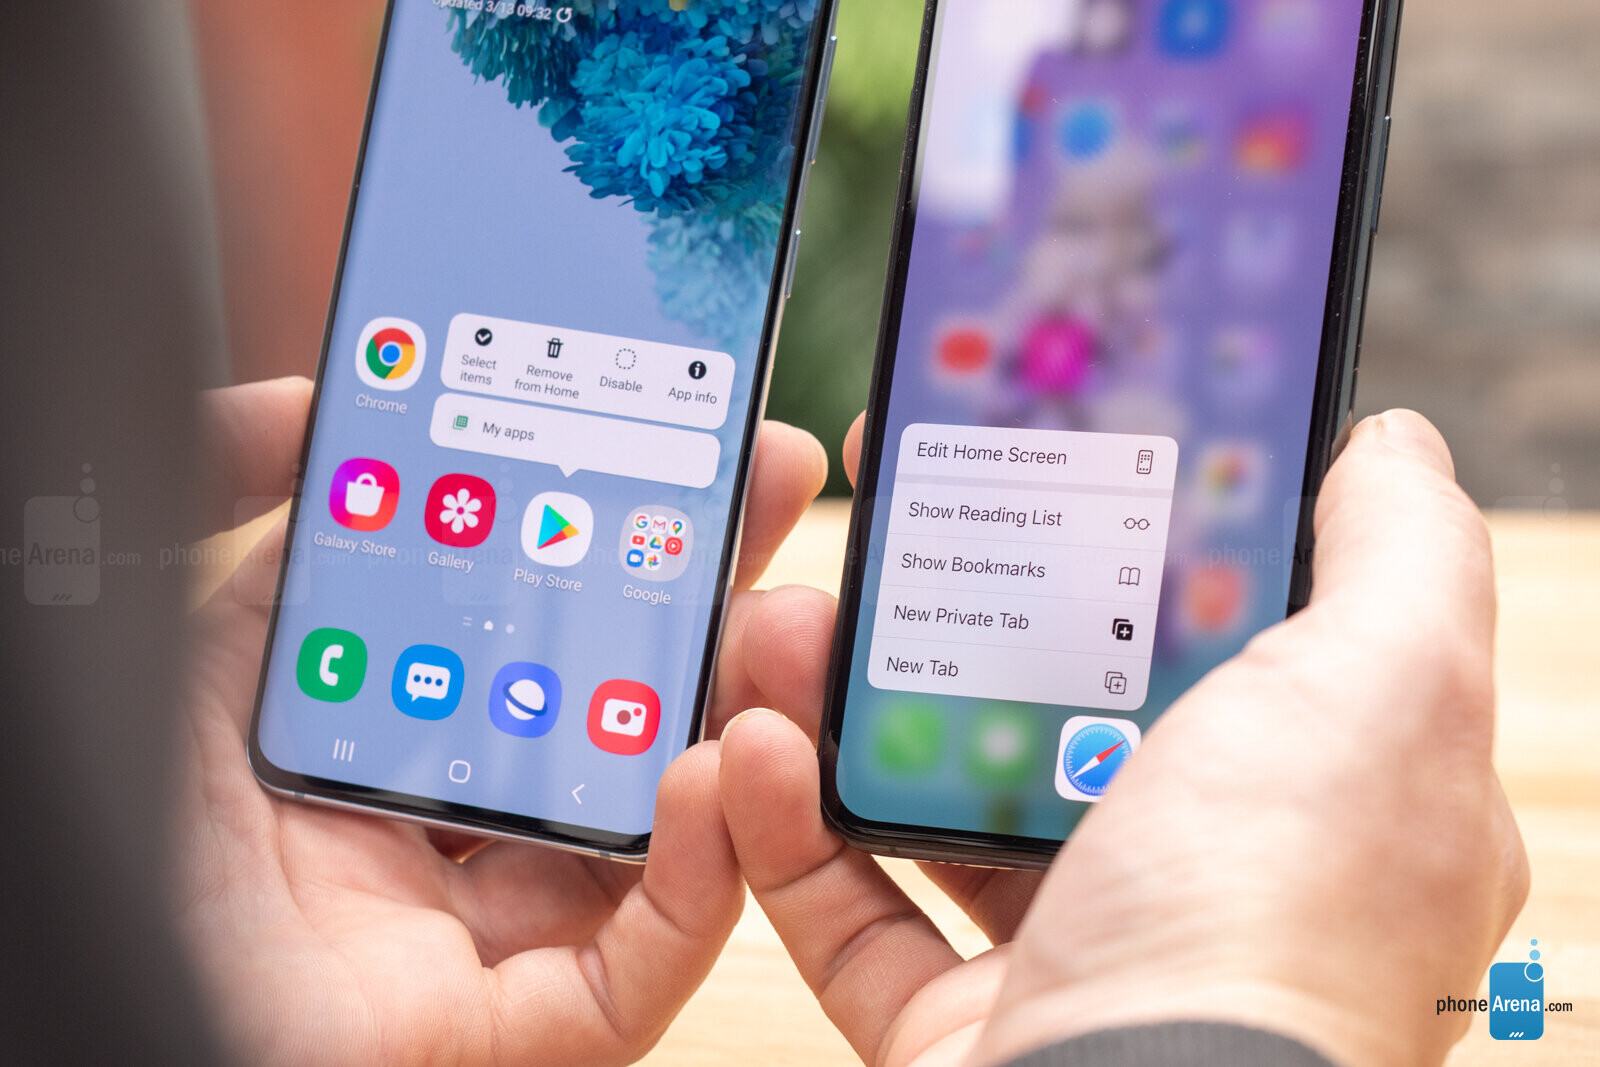 Samsung Galaxy S20 vs Apple iPhone 11 Pro